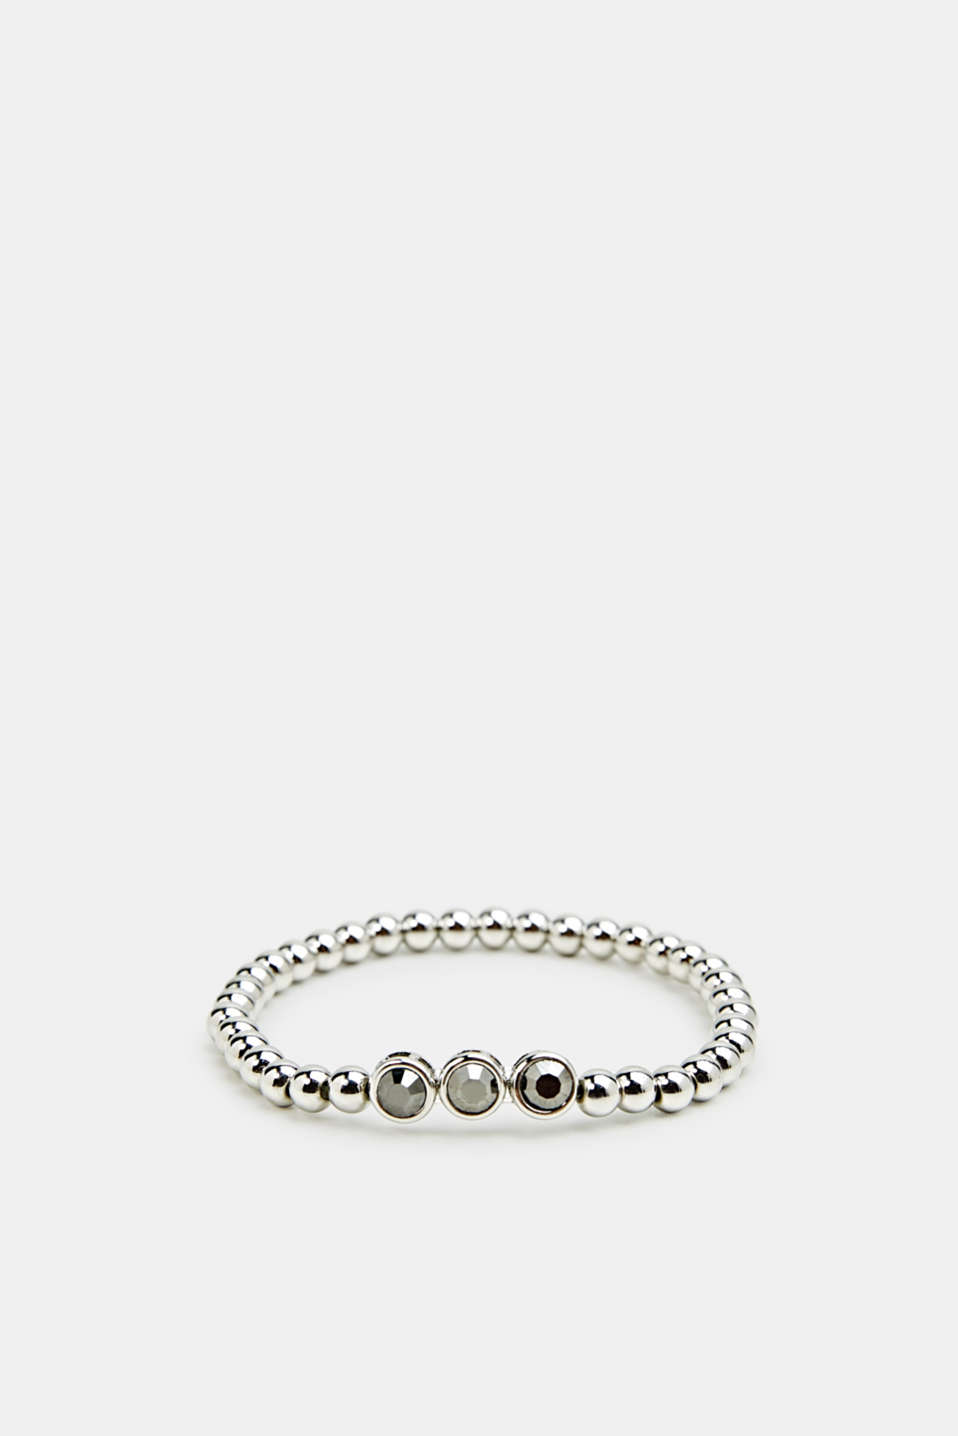 Stretchy metallic bracelet with beads, LC1COLOR, detail image number 0